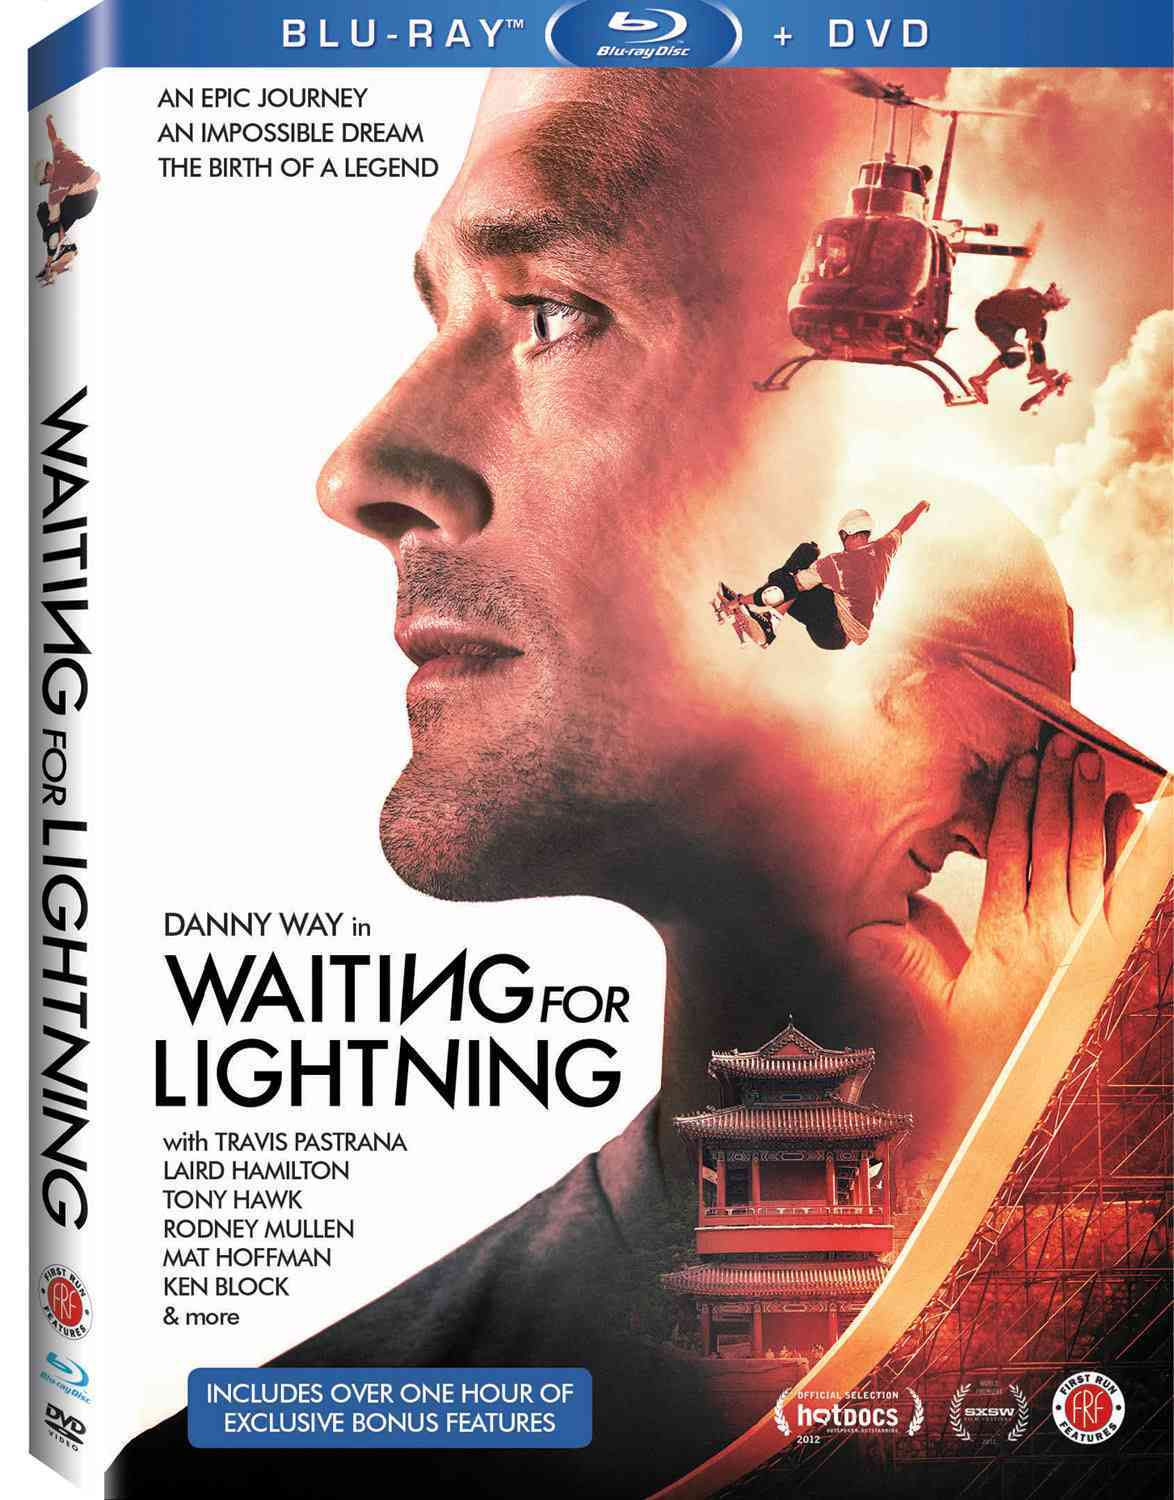 WAITING FOR LIGHTNING BY WAY,DANNY (Blu-Ray)